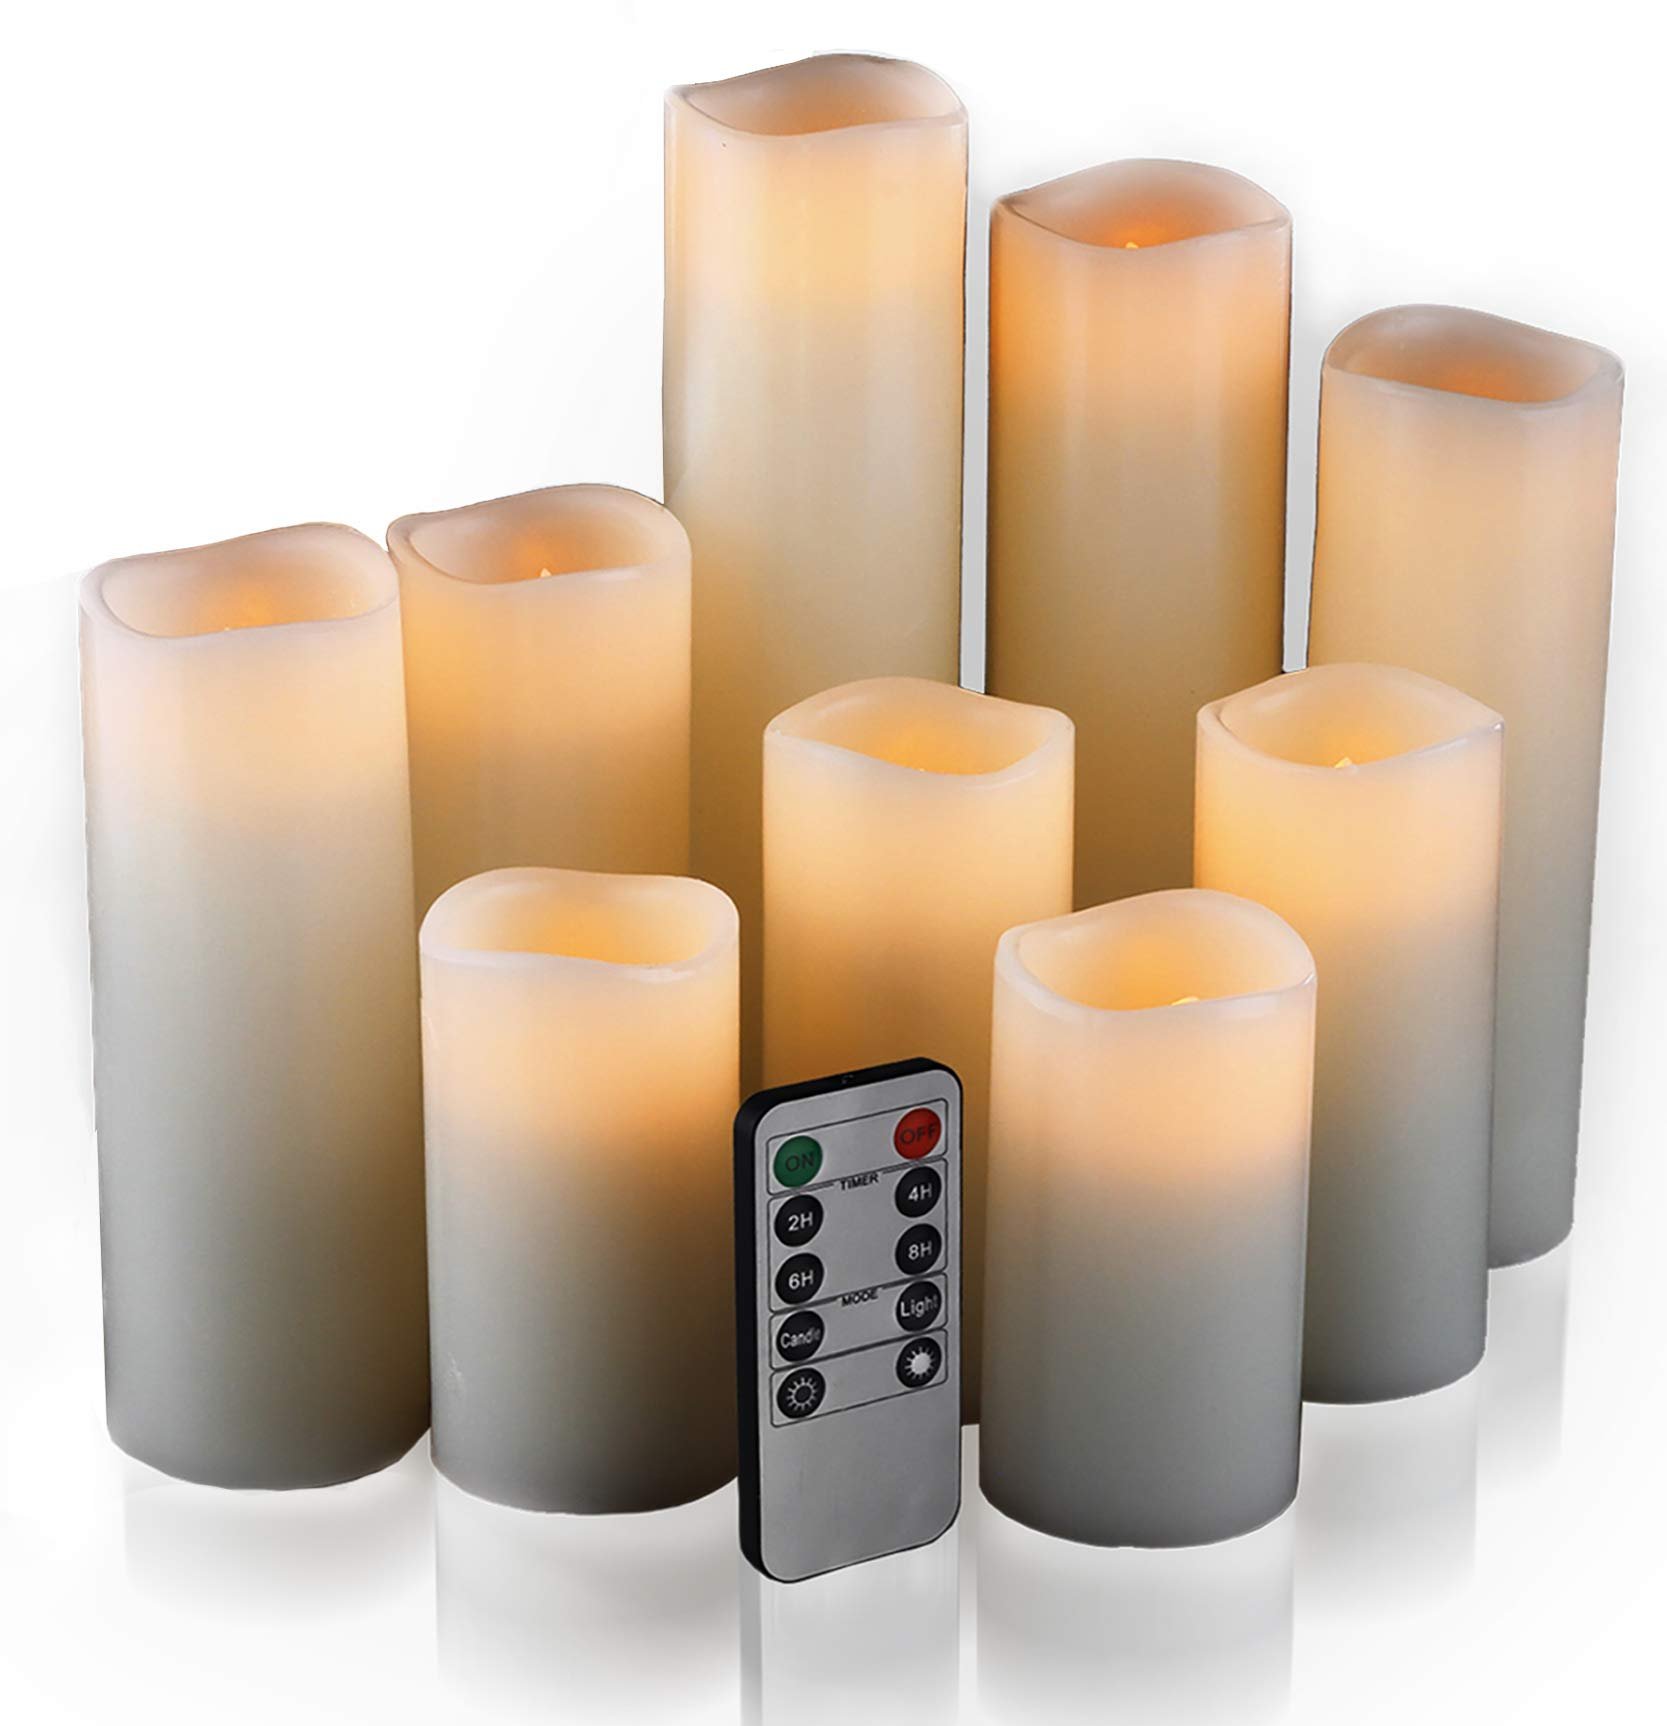 Flameless Candles, Led Candles Set of 9(H 4'' 5'' 6'' 7'' 8'' 9'' xD 2.2'') Ivory Real Wax Battery Candles With Remote Timer by (Batteries not included)